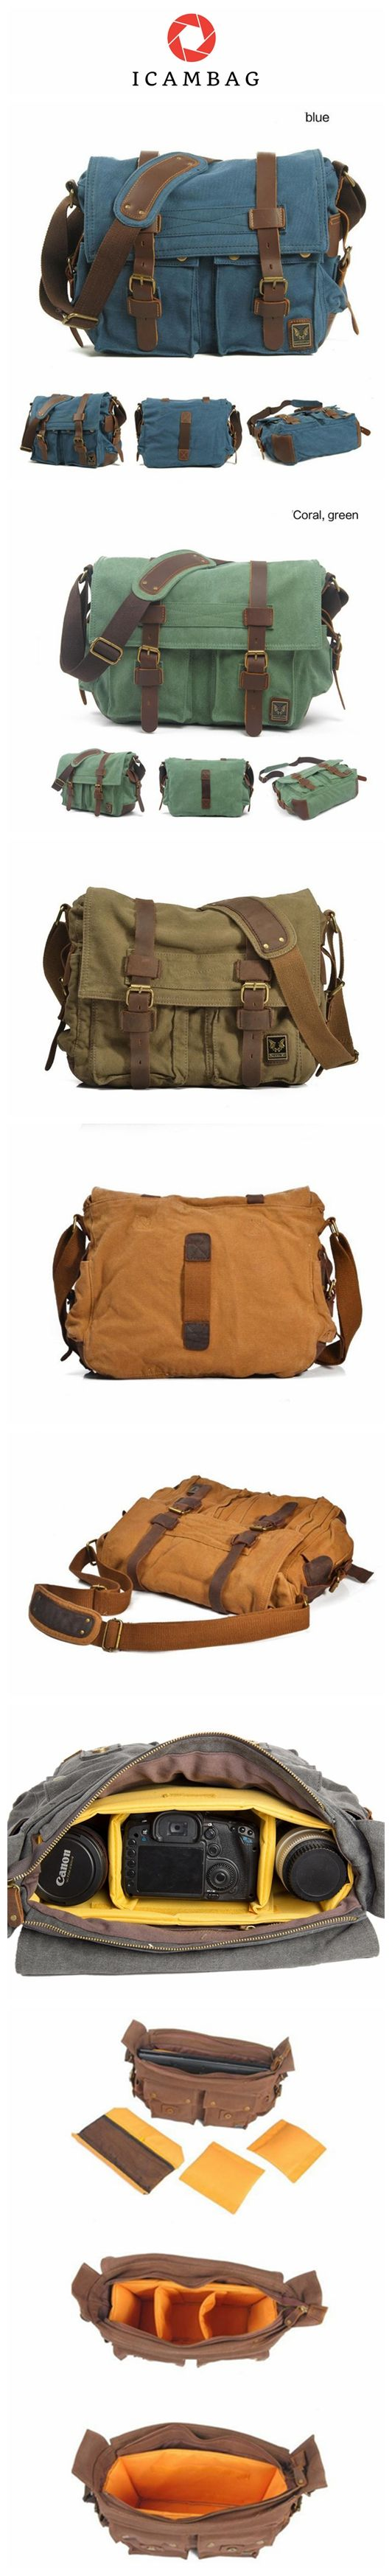 Dark Gray Canvas Leather Camera Bag Leisure Shoulder Bag Messenger Bag DSLR Camera Bag 2138D ********************************************** We use selected thick cotton waxed canvas, quality hardware